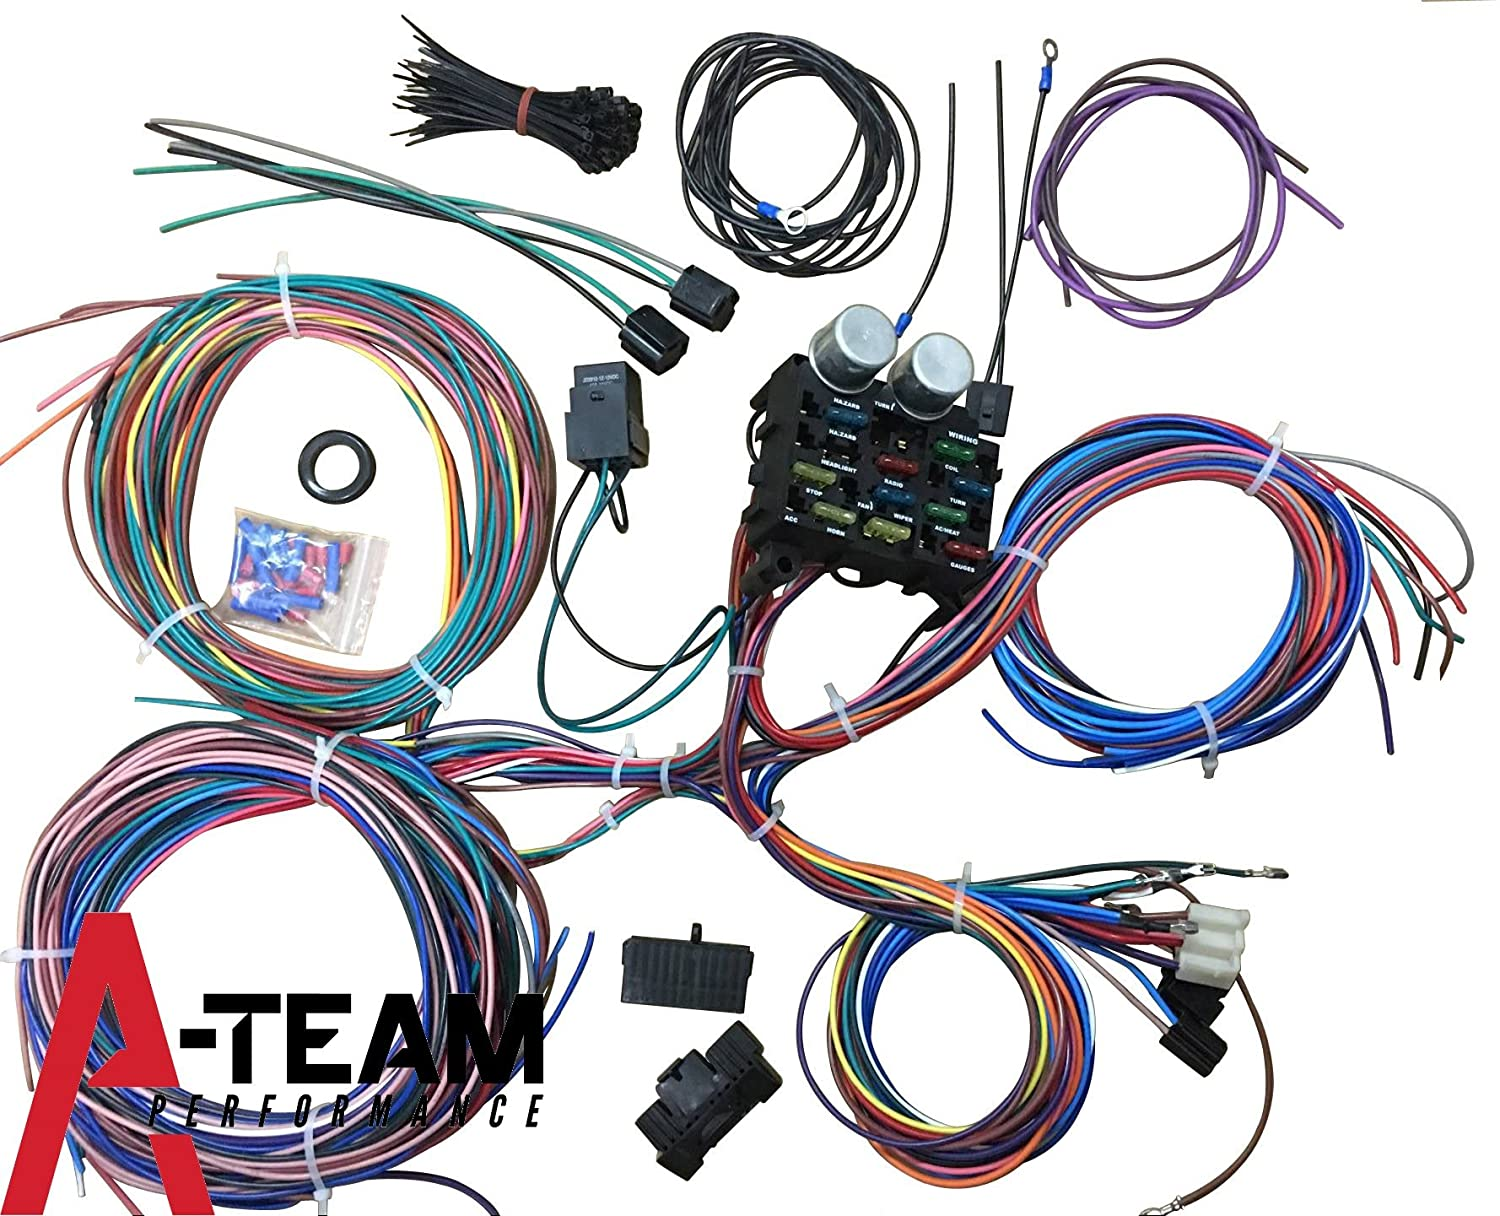 81nvGz8yhML._SL1500_ amazon com ez wiring mini 20 21 circuit wiring harness automotive ez wiring harness 21 circuit with gm column at fashall.co